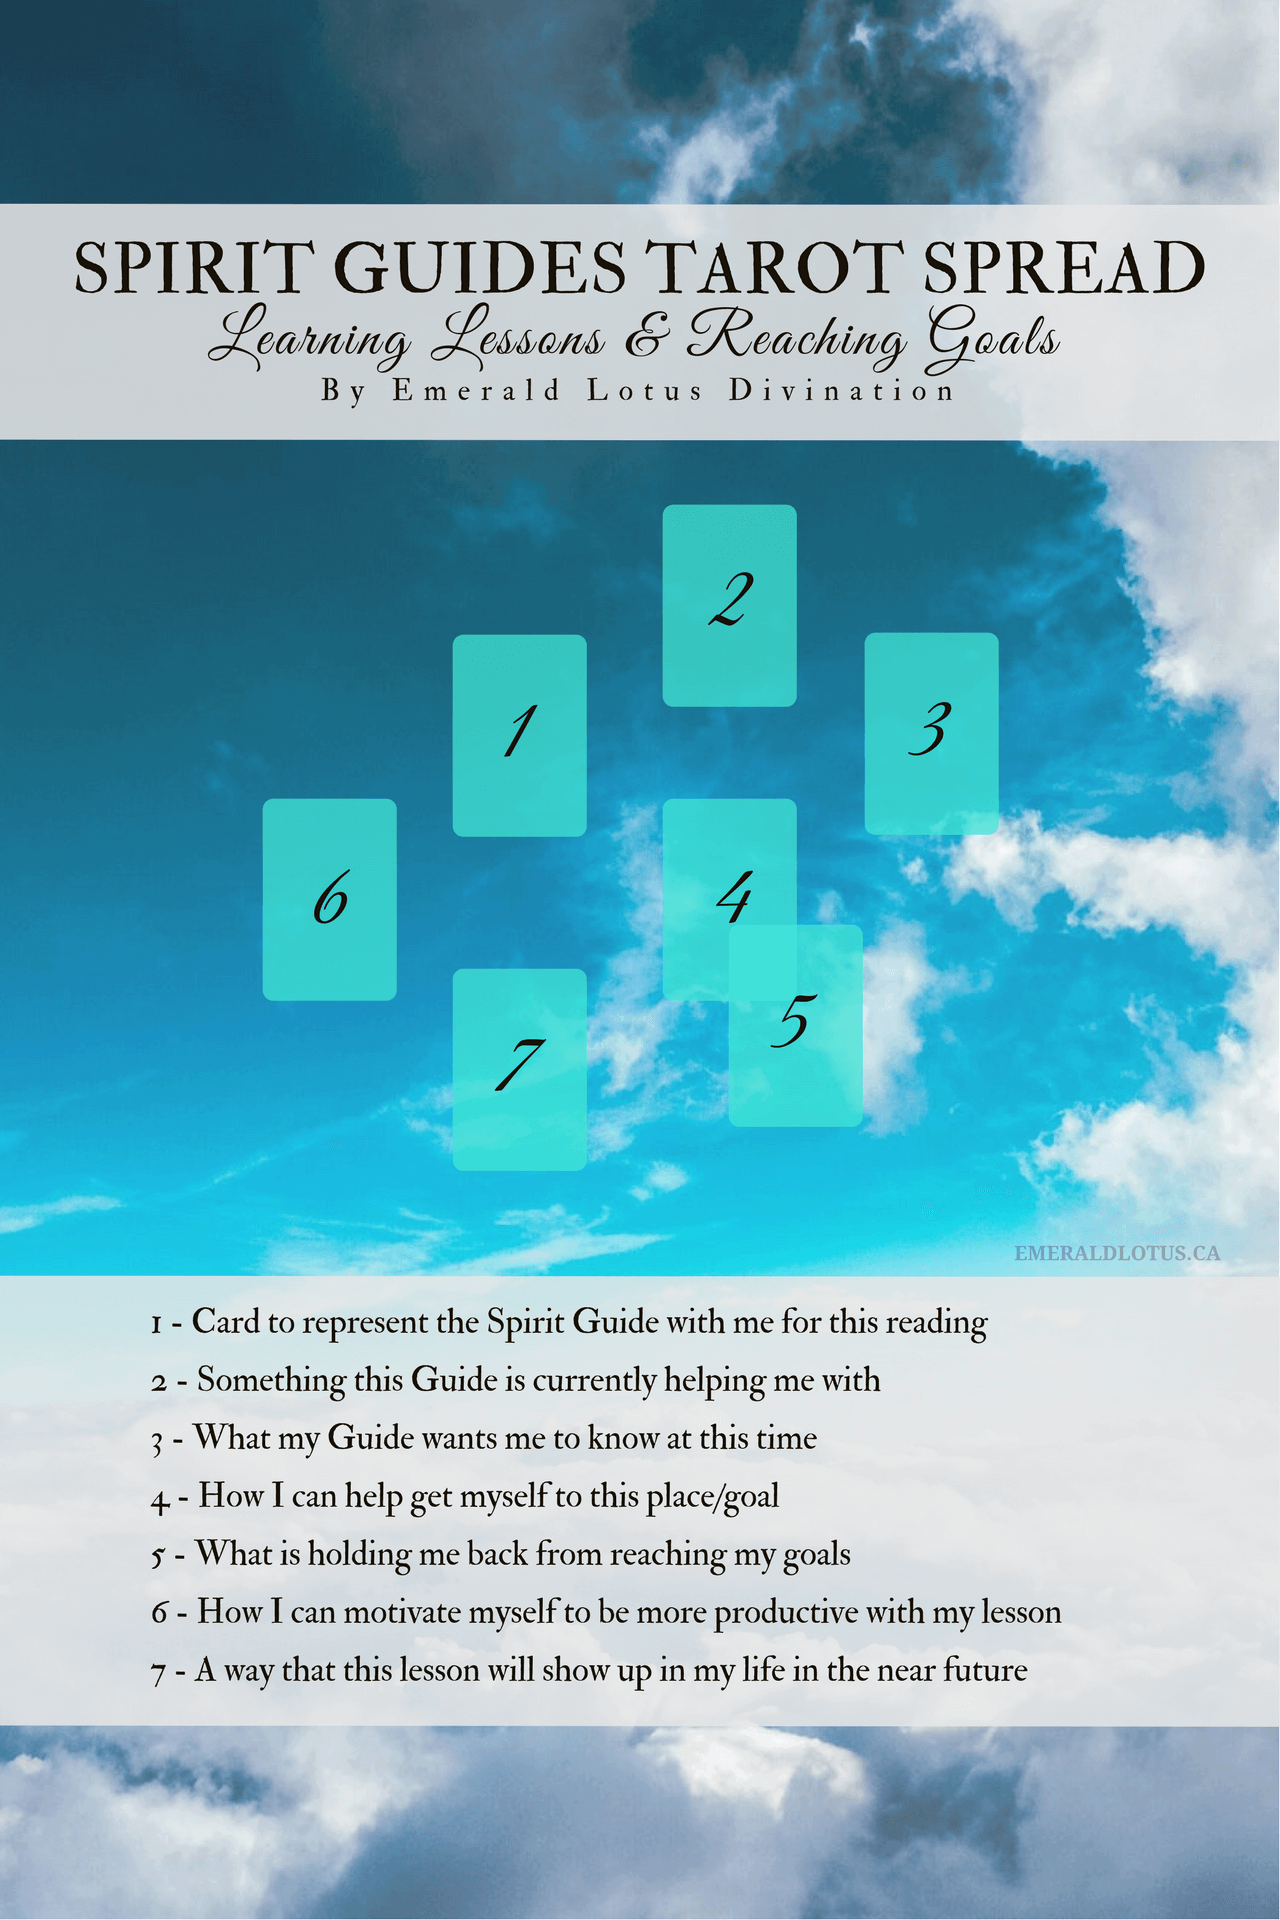 how-to-communicate-and-get-help-from-spirit-guides-free-tarot-spread-1-1.png